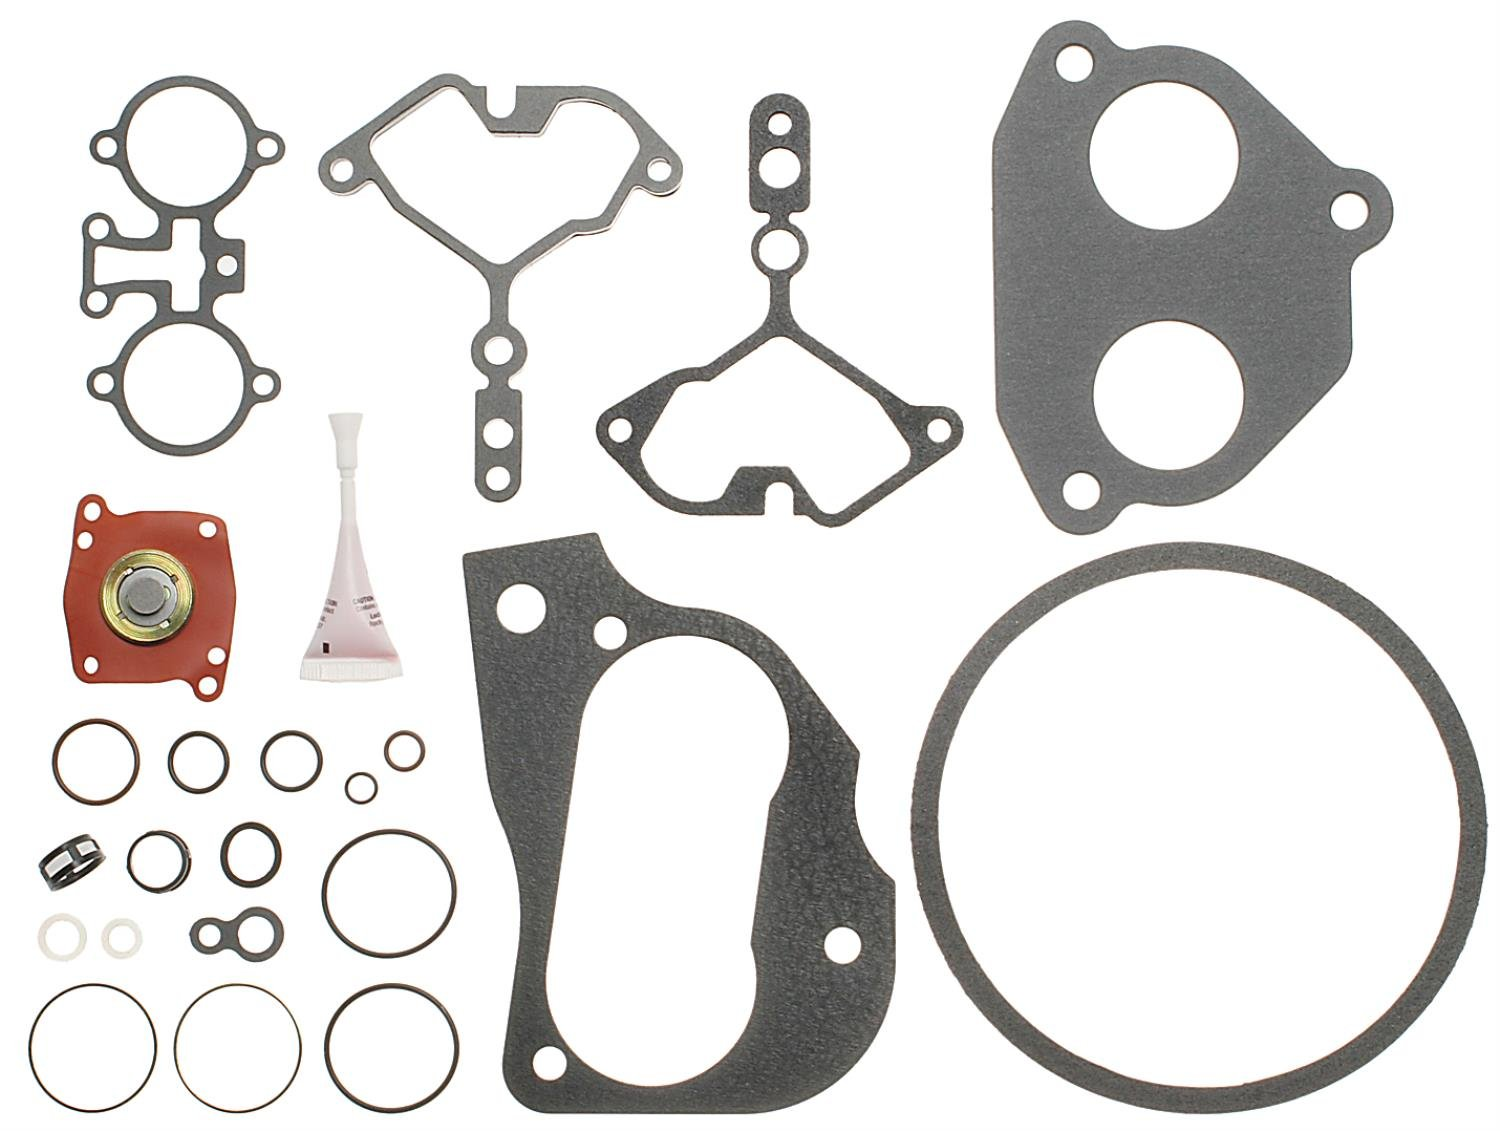 ACDelco 217-2893 Professional Fuel Injection Throttle Body Repair Kit with Gaskets and Seals